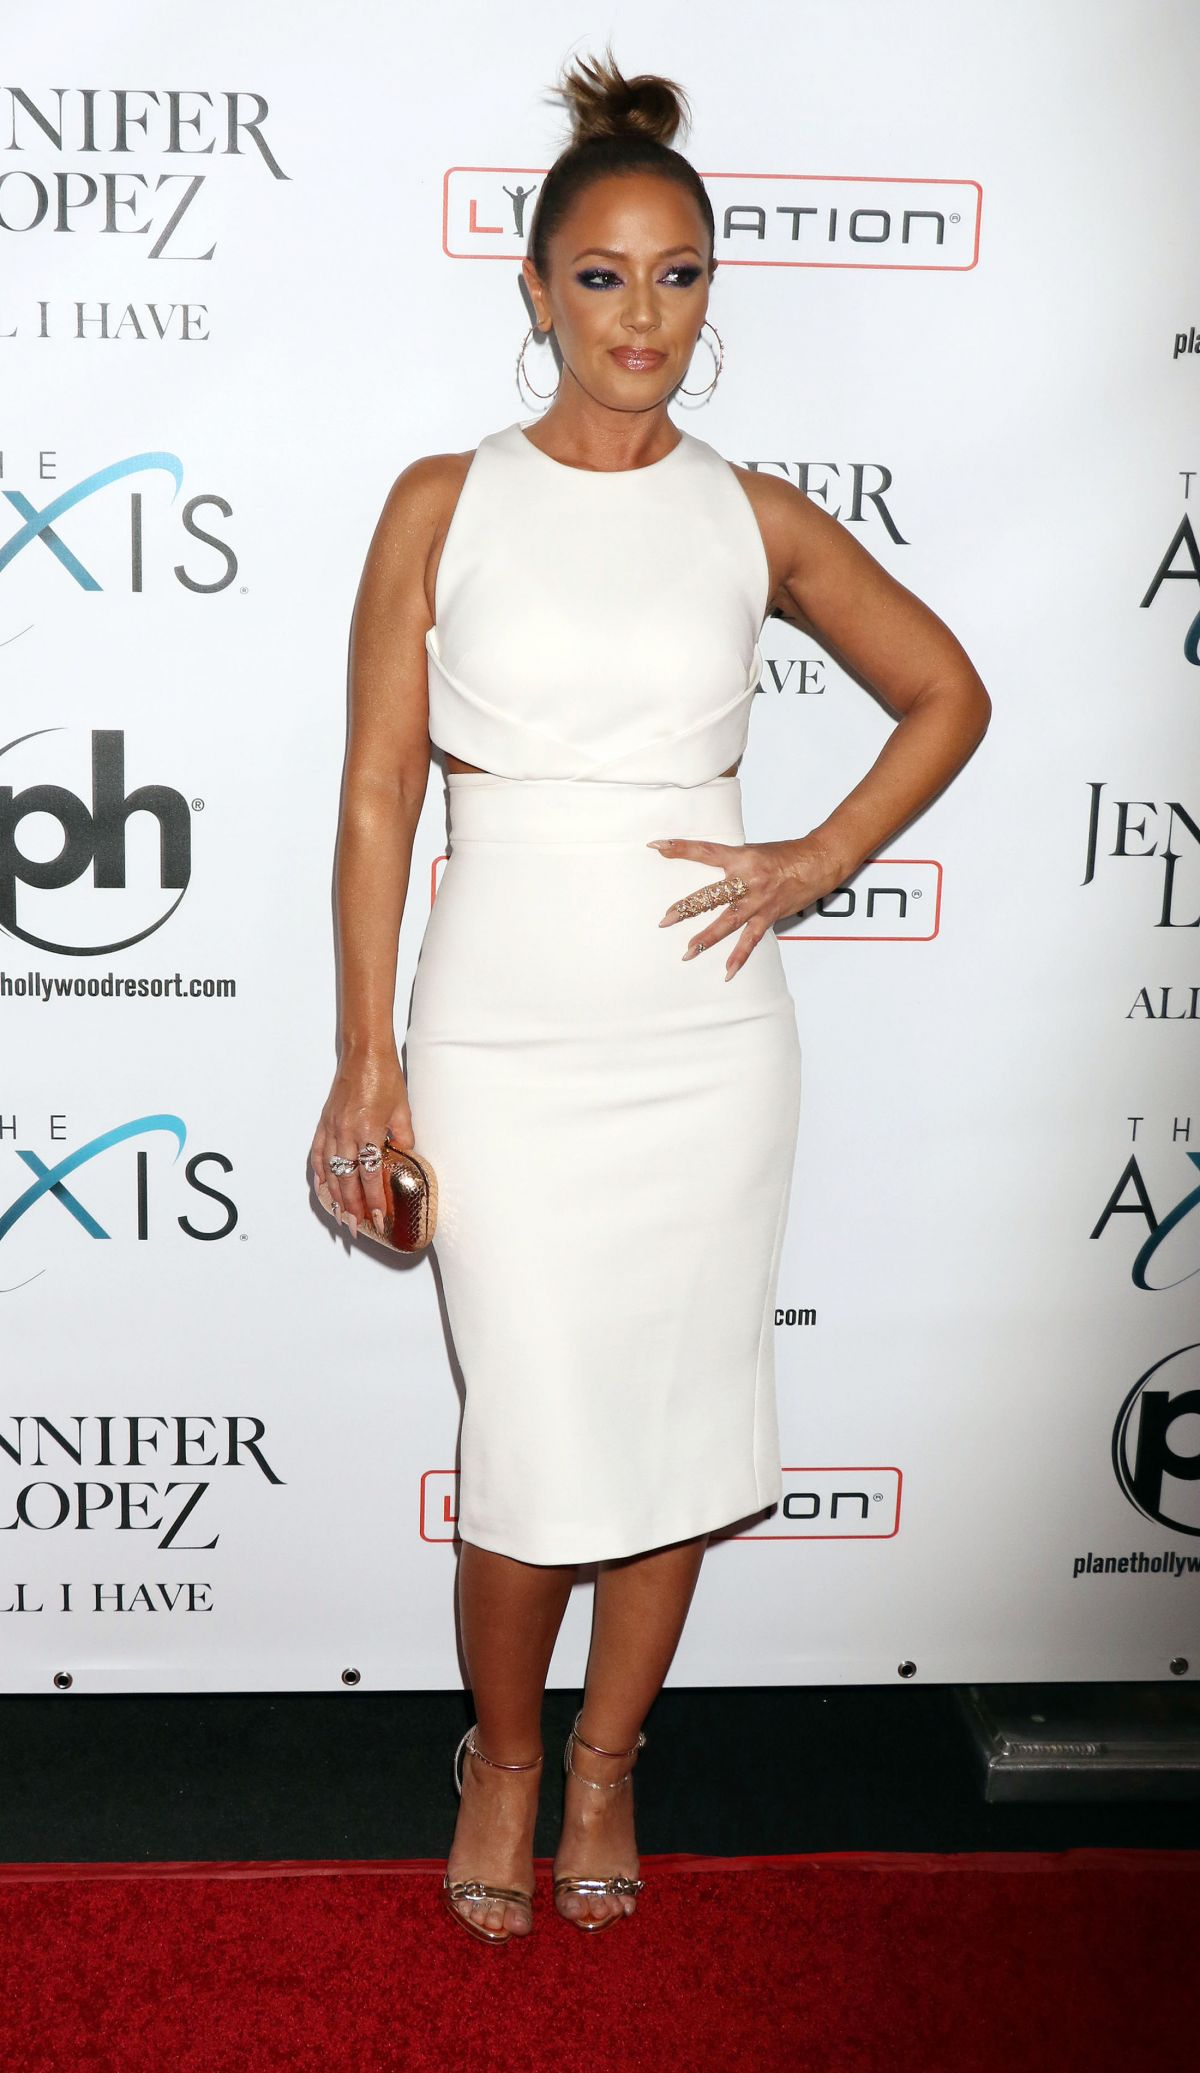 Leah Remini At Opening Night Of Jennifer Lopez